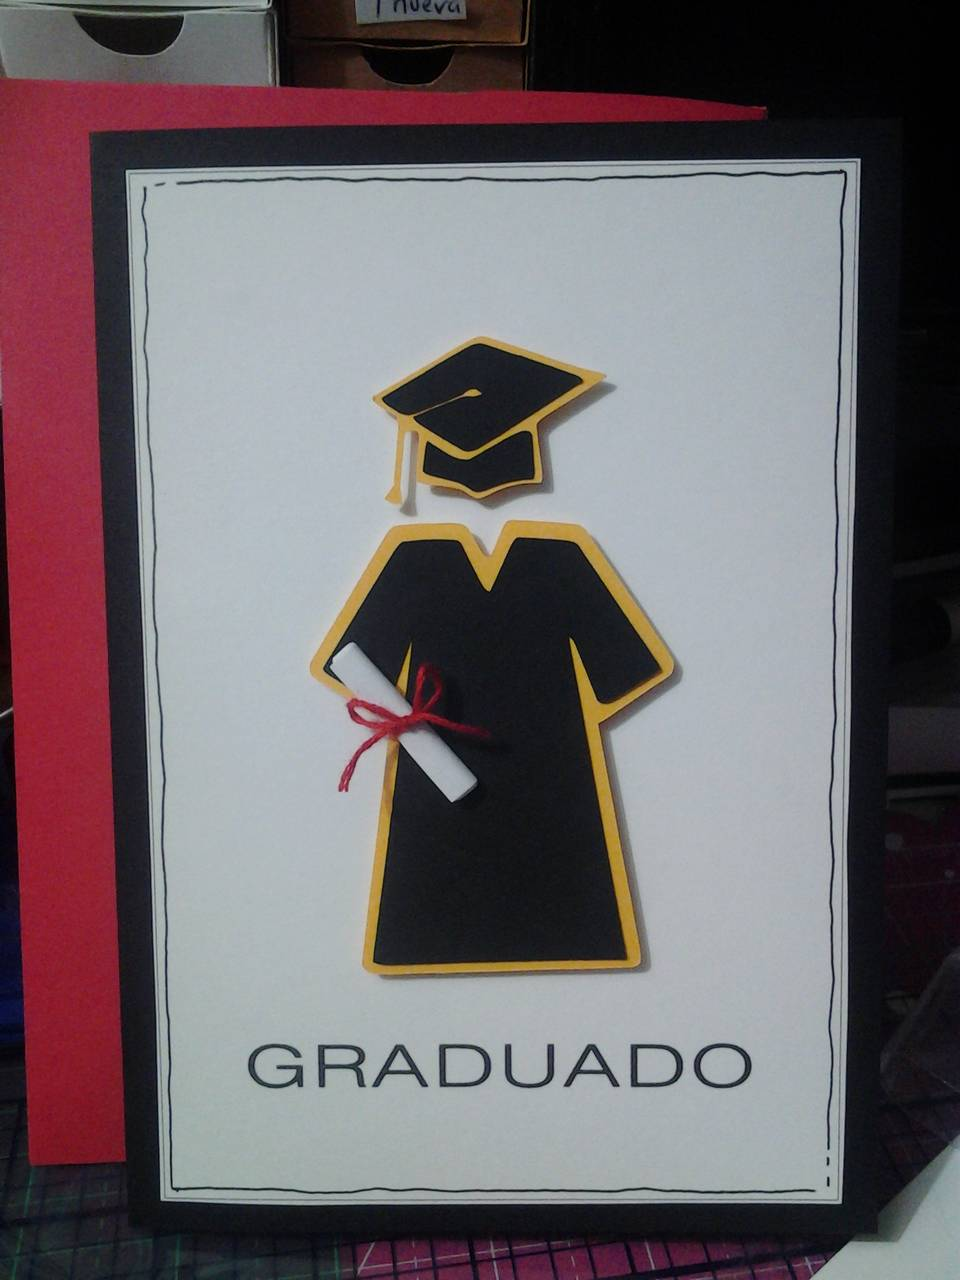 for the graduate